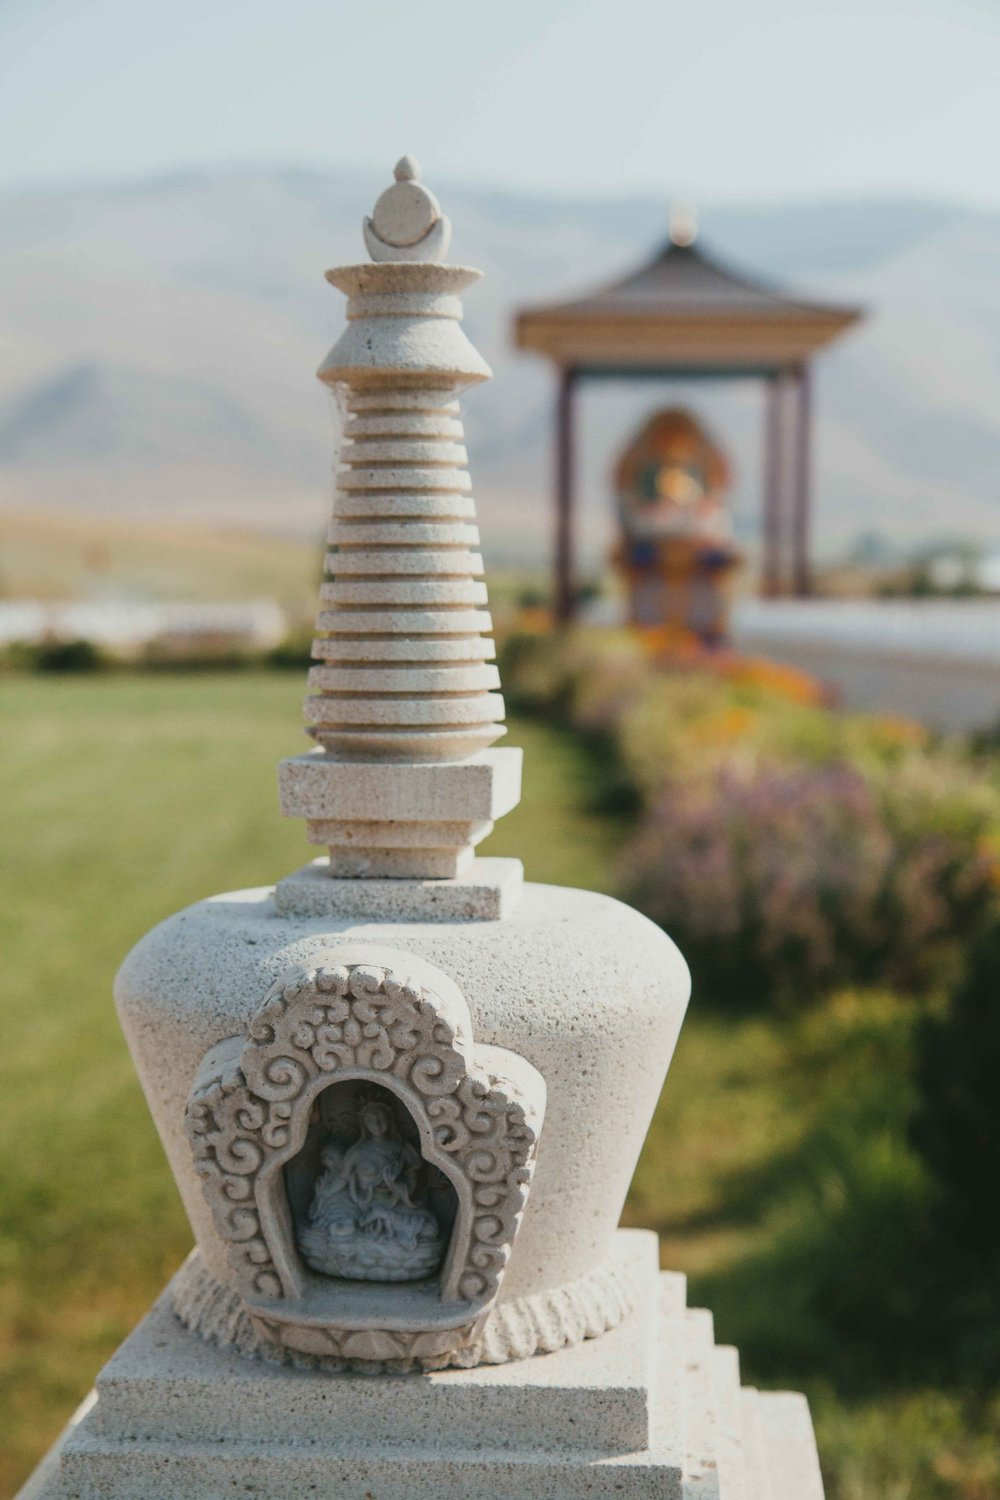 Ewam Buddha Garden, the Garden of One Thousand Buddhas, near Missoula, Montana. A must visit!